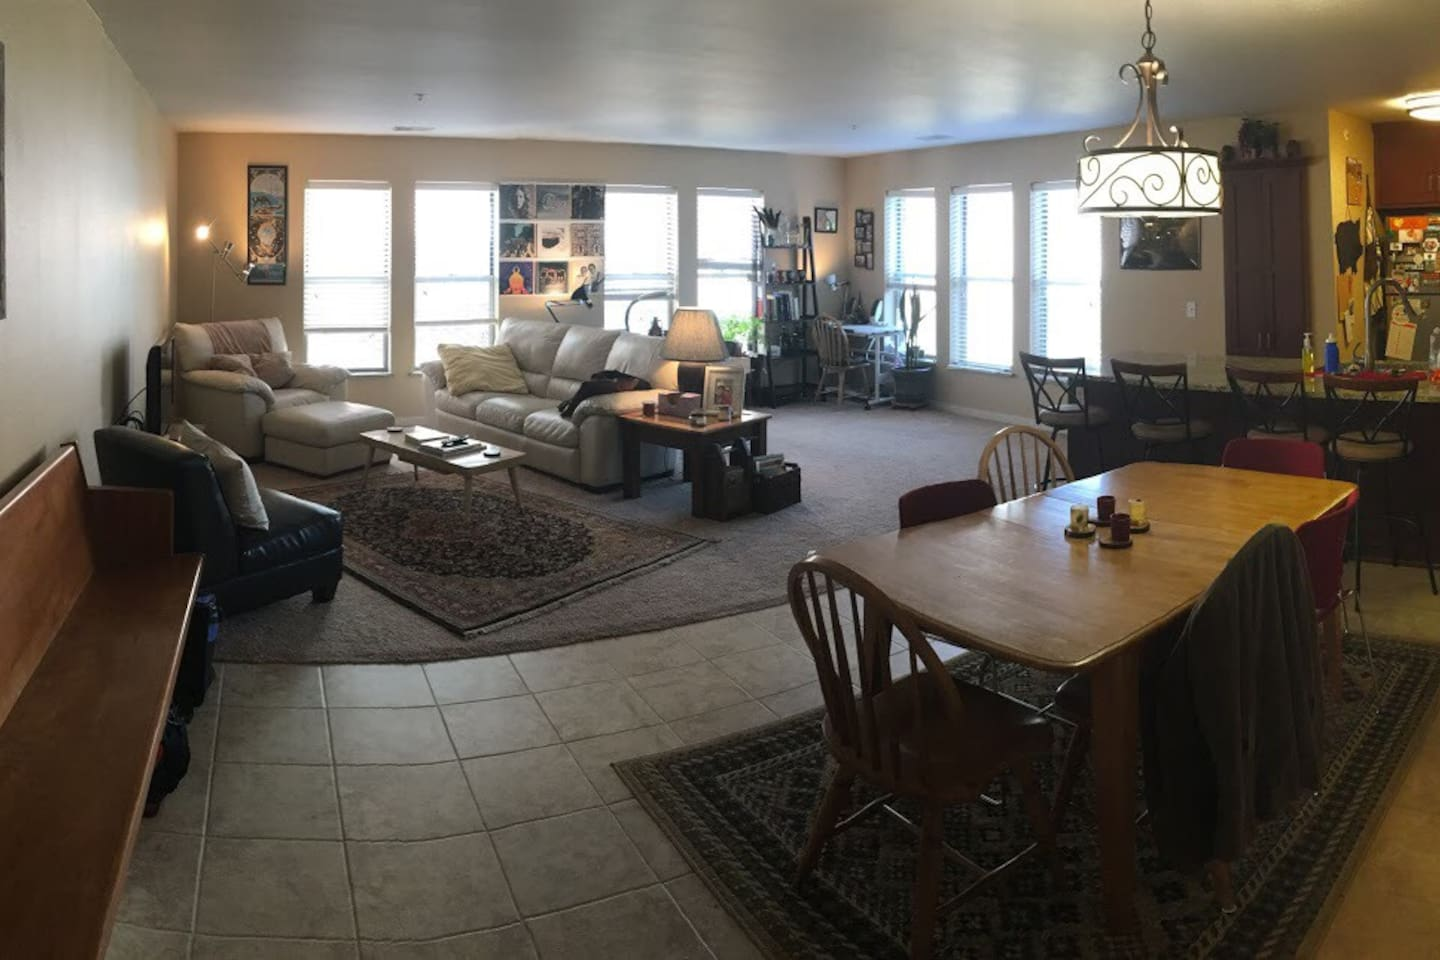 Main living area & kitchen (to the right)